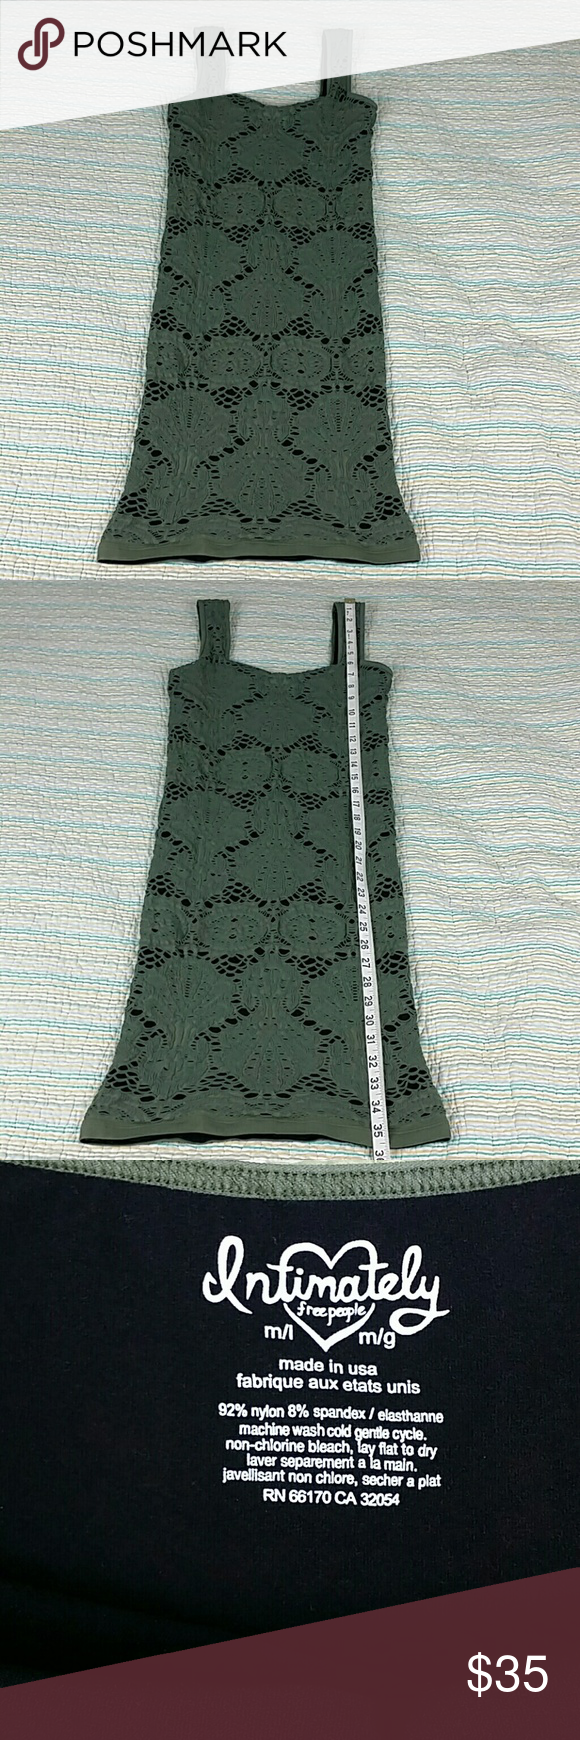 Free People Intimately Medallion Bodycon M/L Green Anthropologie Free People Intimately Medallion Bodycon Tight Lace Crochet M/L Free People Dresses Mini